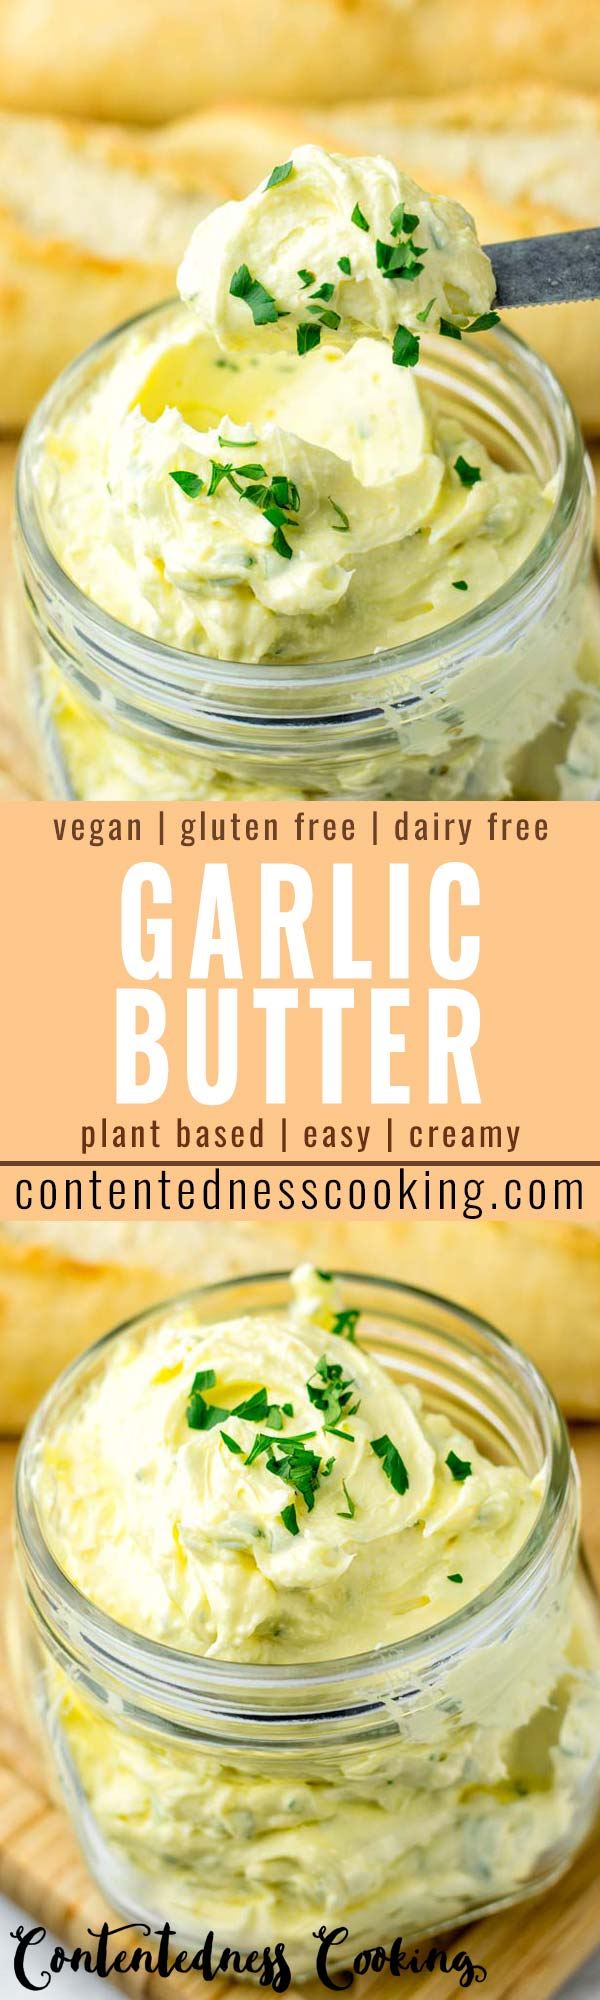 This Garlic Butter will be an instant hit at your house. No one would ever guess it is vegan and dairy free. It is delicious on bread, pasta, stir fry vegetables and more. Amazing for dinner, lunch, meal prep and even breakfast plus parties that the whole family will love. #vegan #dairyfree #glutenfree #garlicbutter #veganbutter #mealprep #dinner #lunch #budgetmeals #contentednesscooking #partyfood #bbqideas